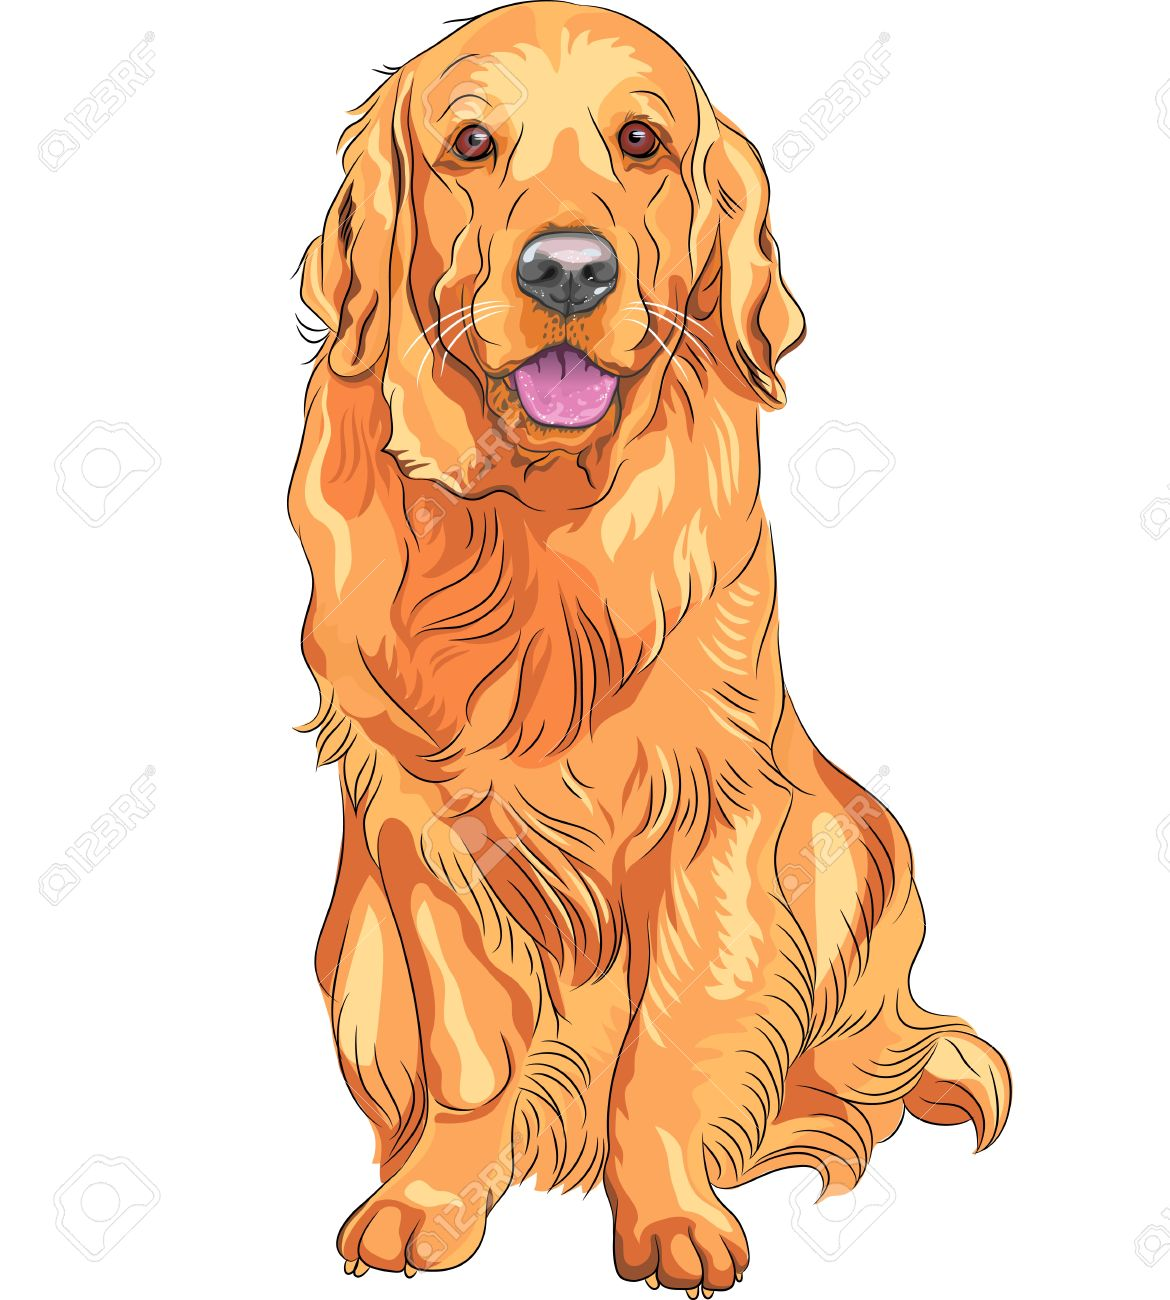 Retriever clipart #6, Download drawings